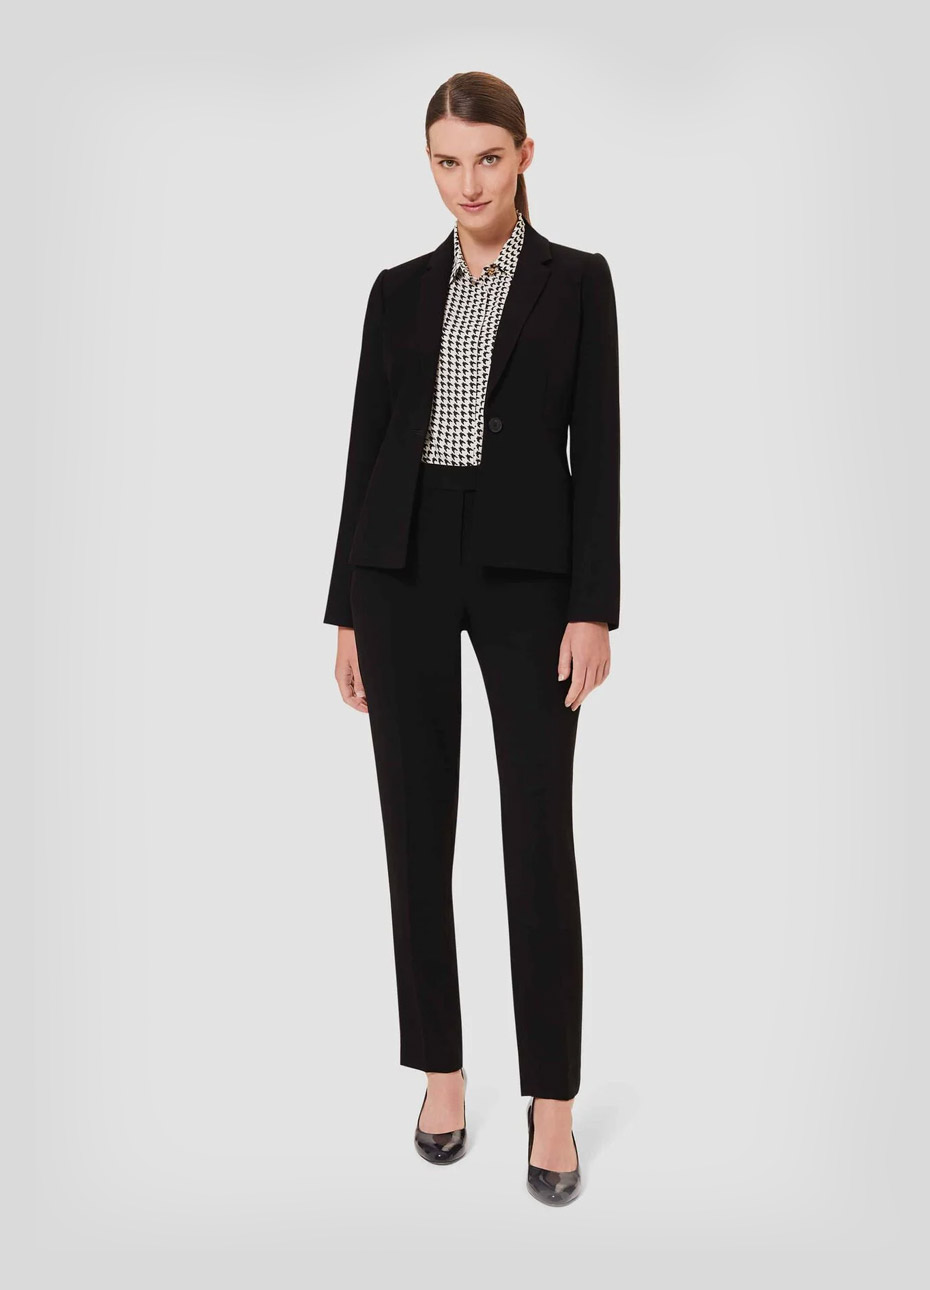 Women's trouser suit for work worn with a dogtooth patterned shirt and black court shoes by Hobbs.